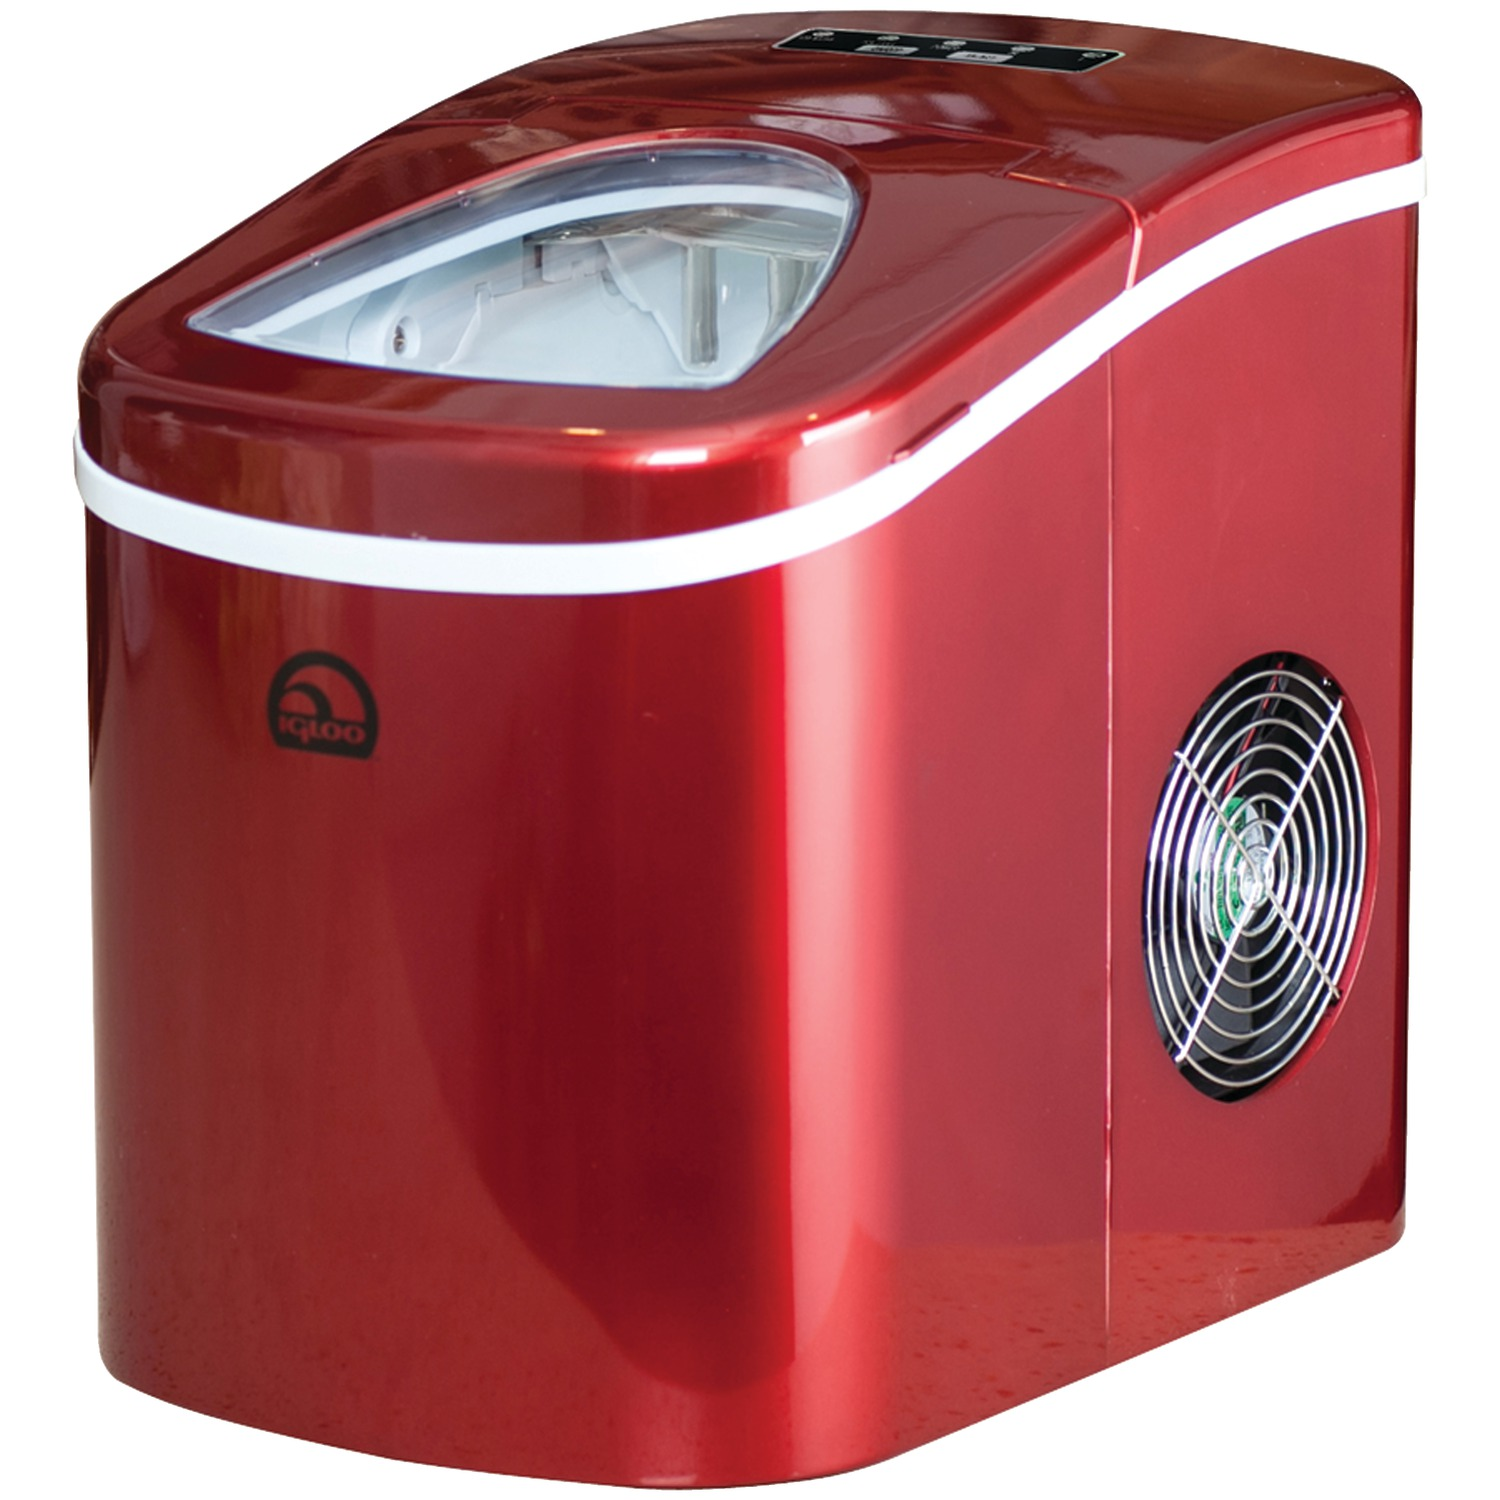 Igloo Compact Portable Ice Maker - ICE108 - Red